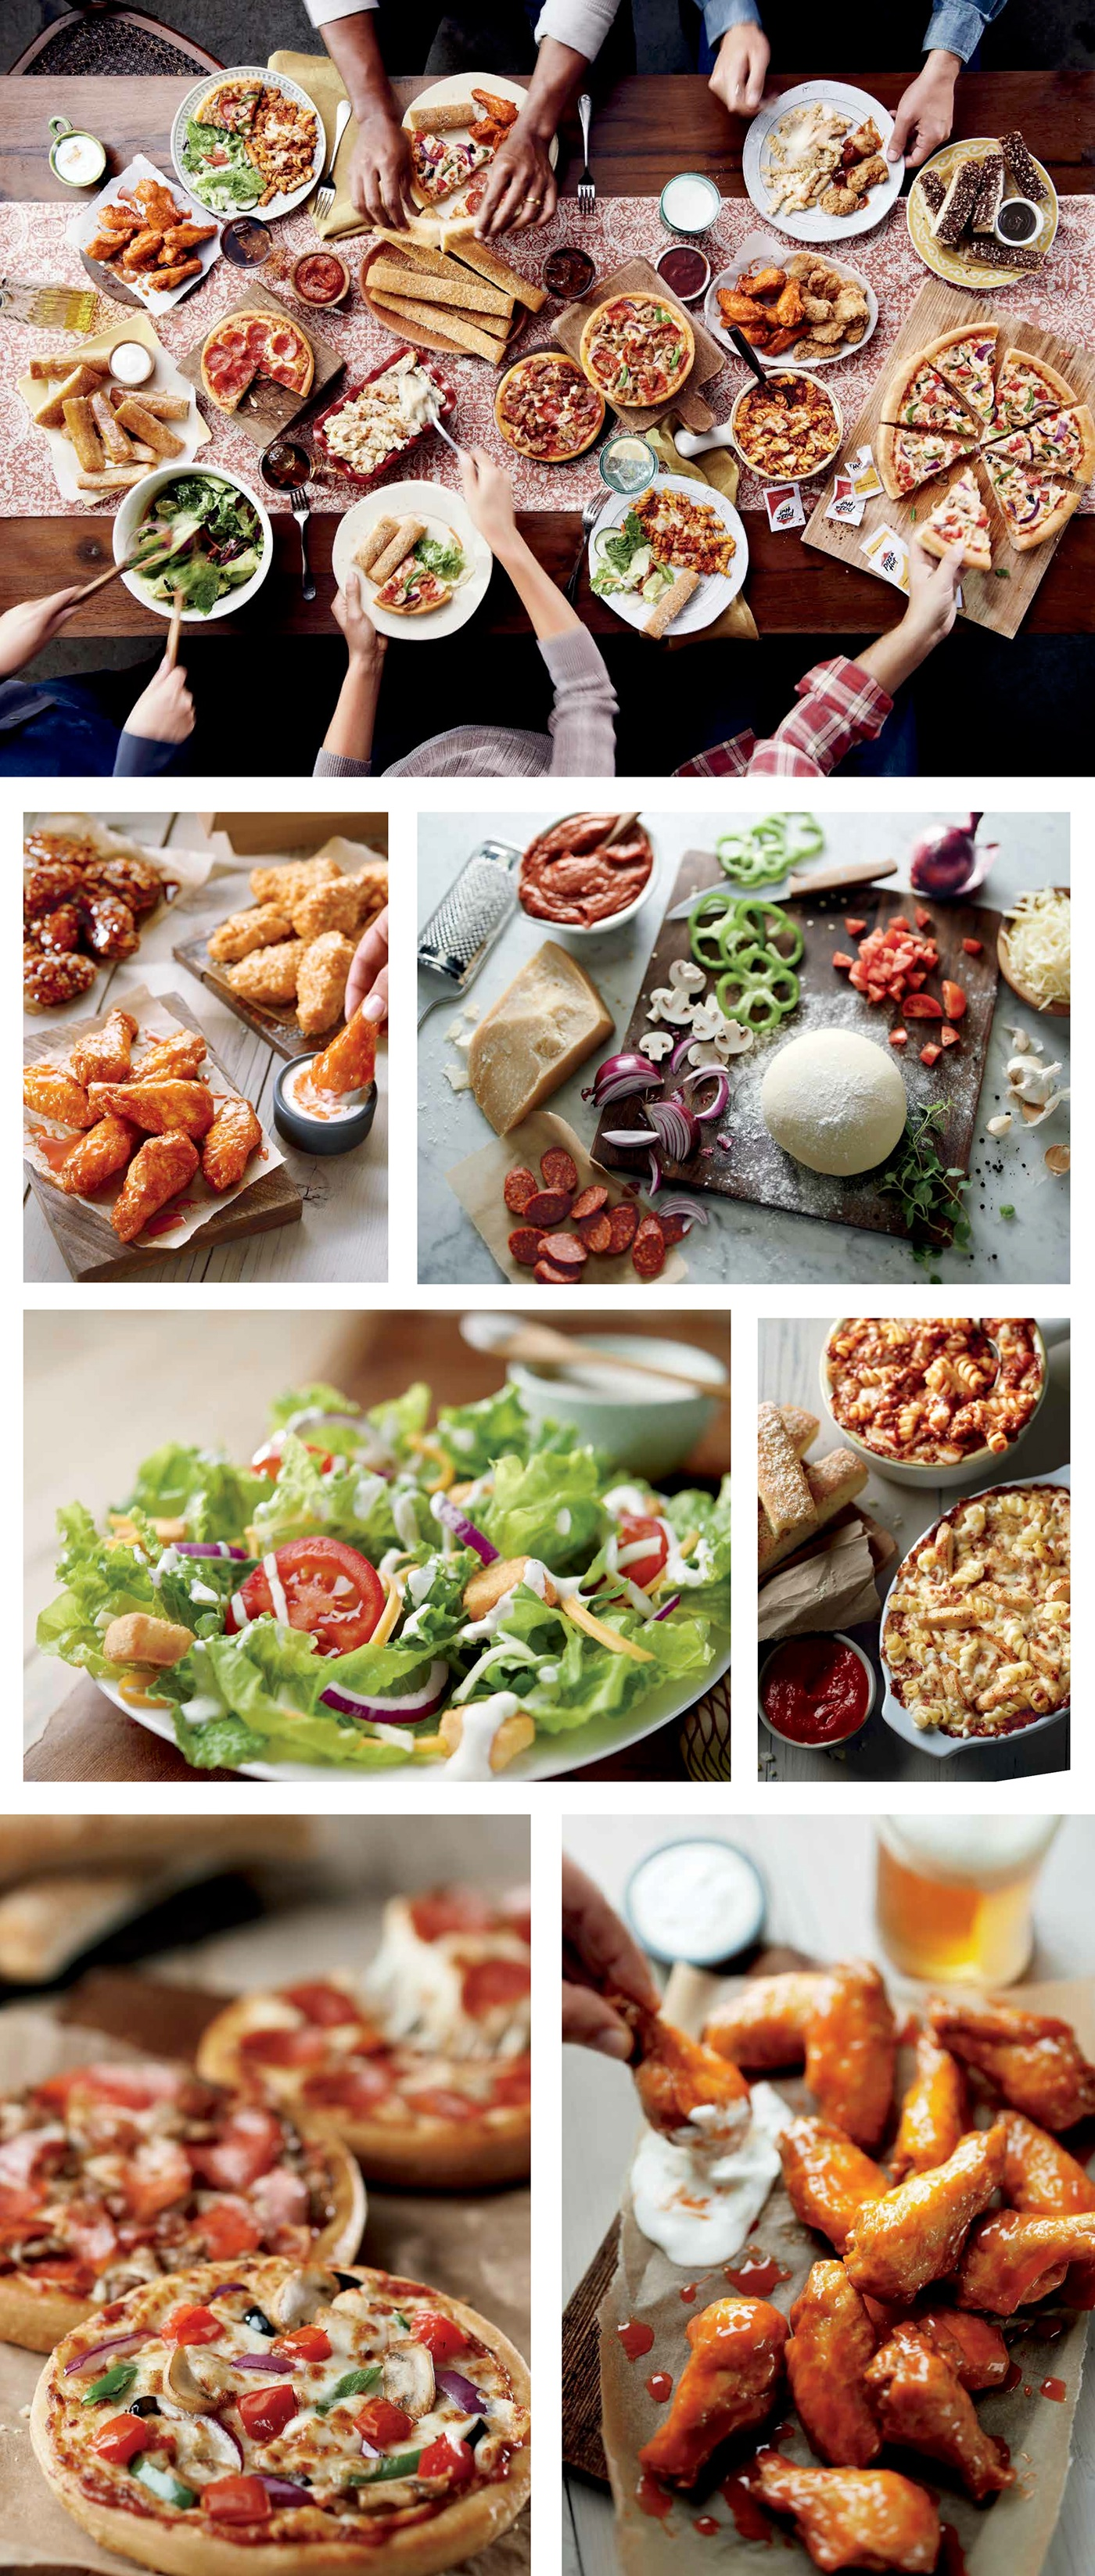 Effortlessly Real Pizza Hut Express Photography on Behance